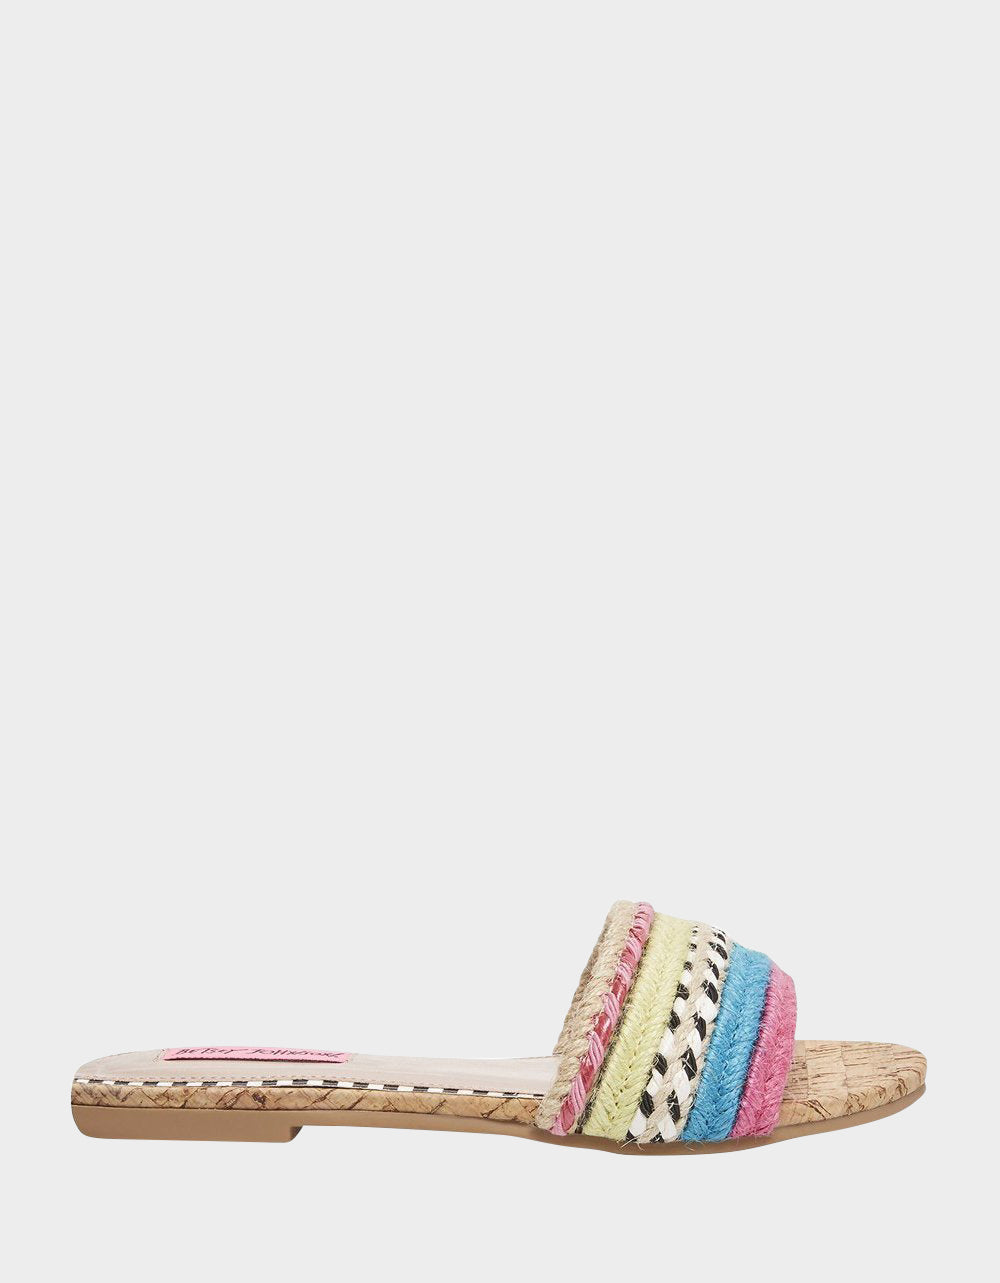 MARVE NATURAL MULTI - SHOES - Betsey Johnson